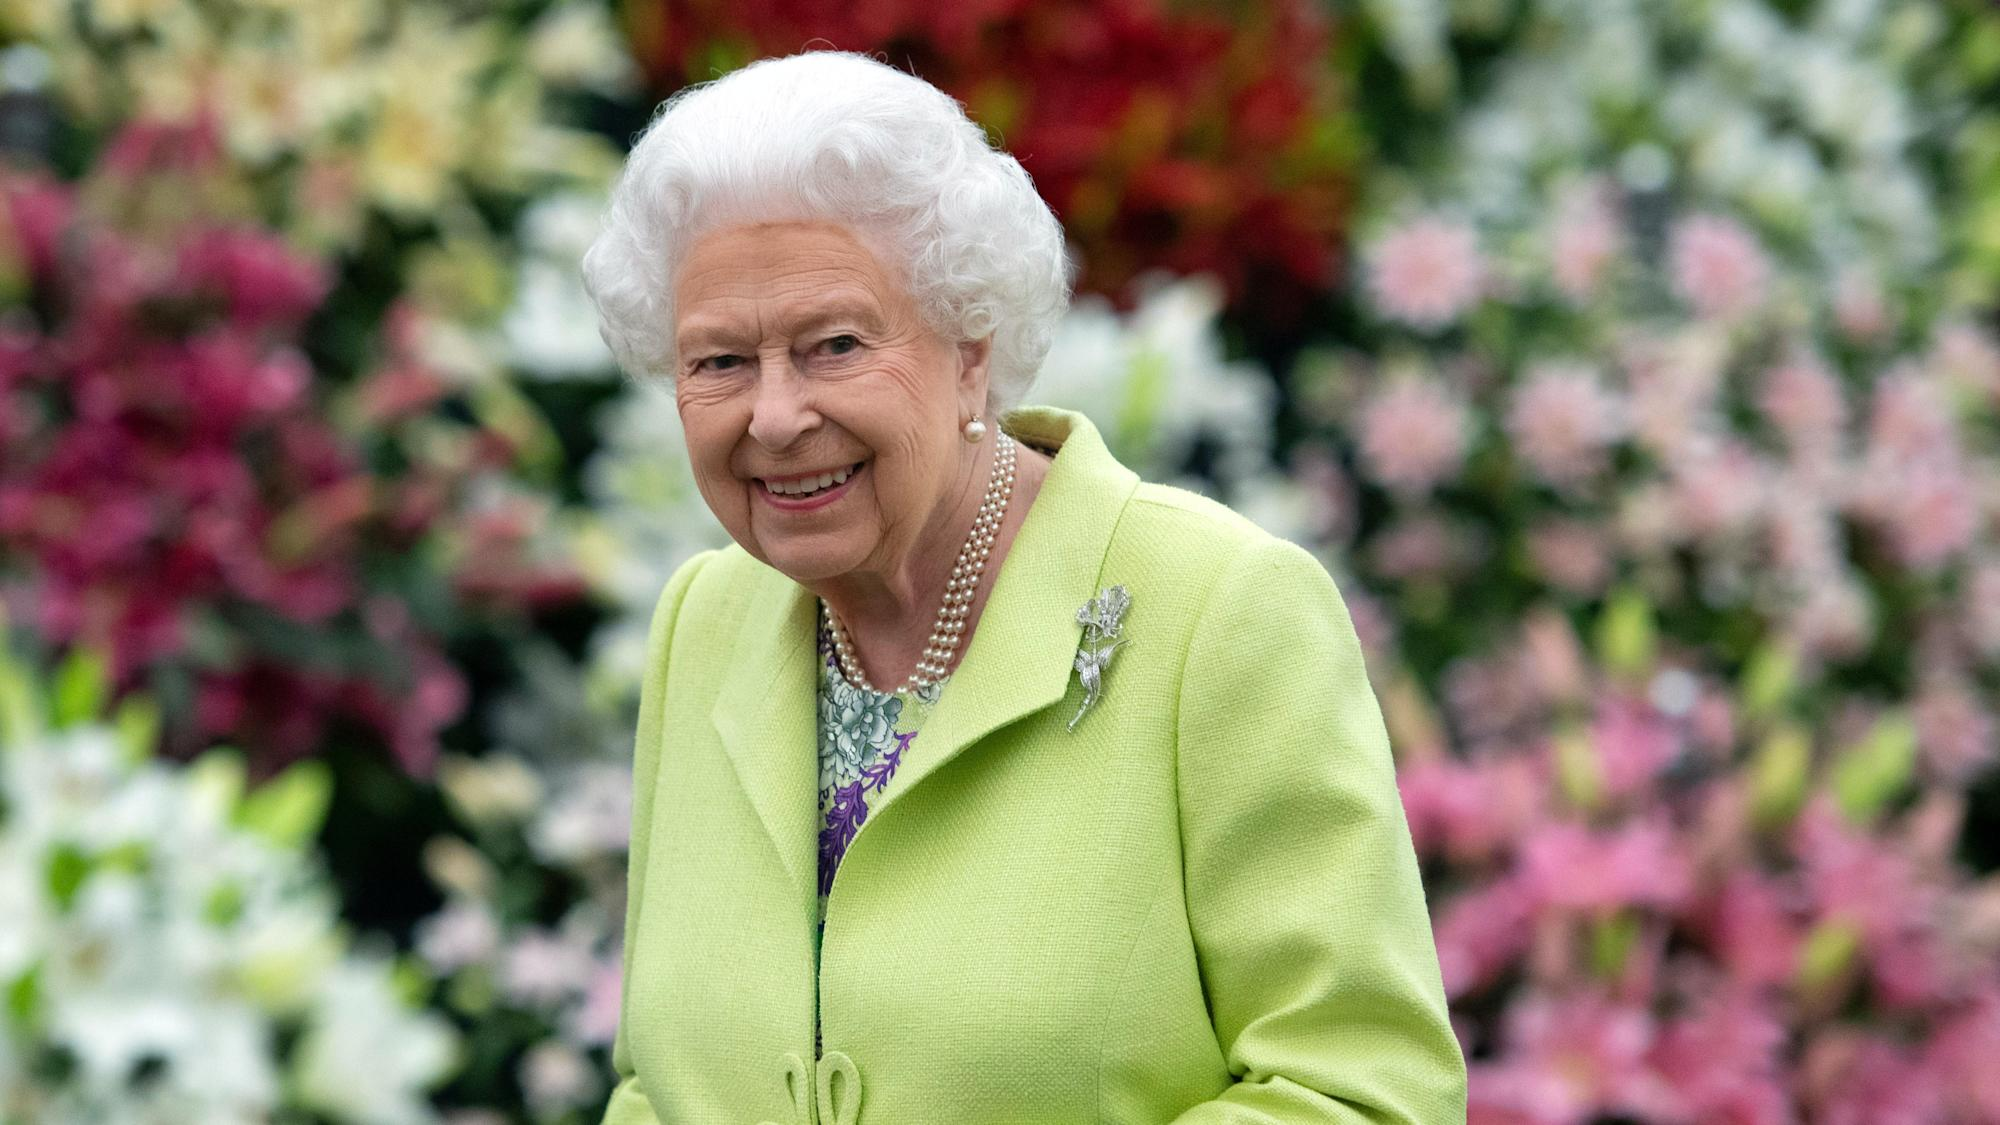 Government mindful that money spent wisely on Queen's Jubilee plans, says Dowden